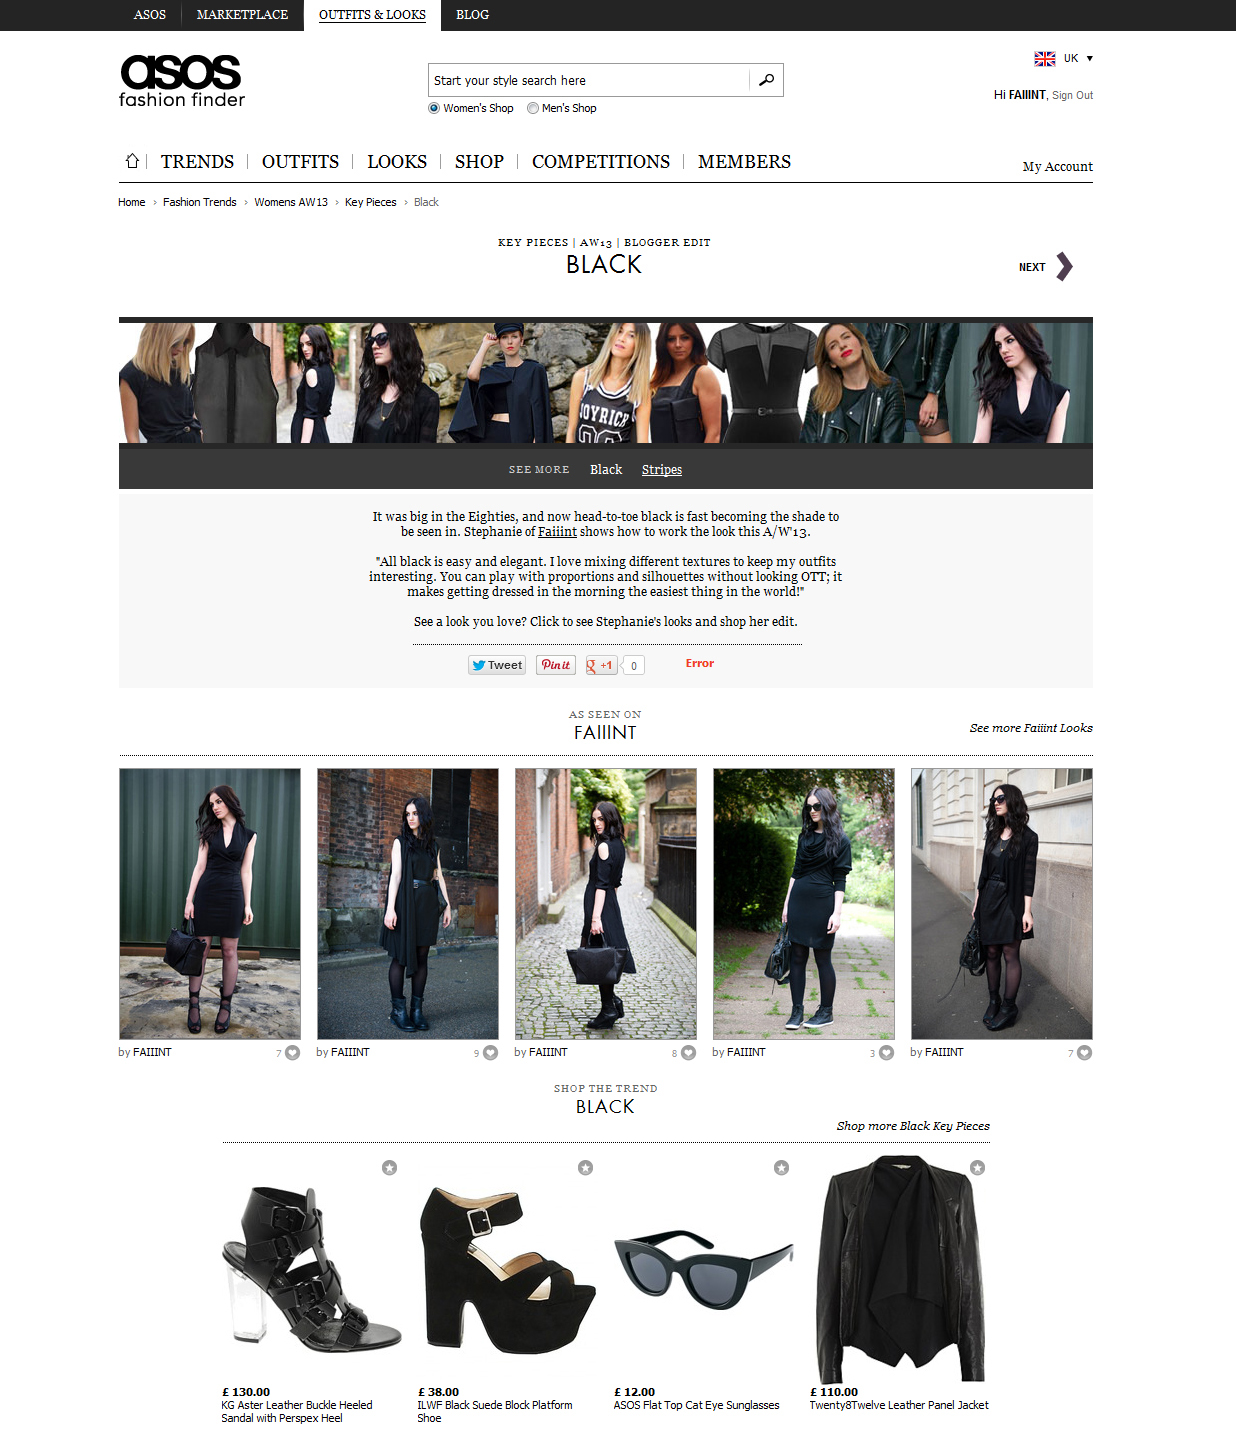 FAIIINT ASOS fashion finder 'blogger key pieces' feature on all black clothing